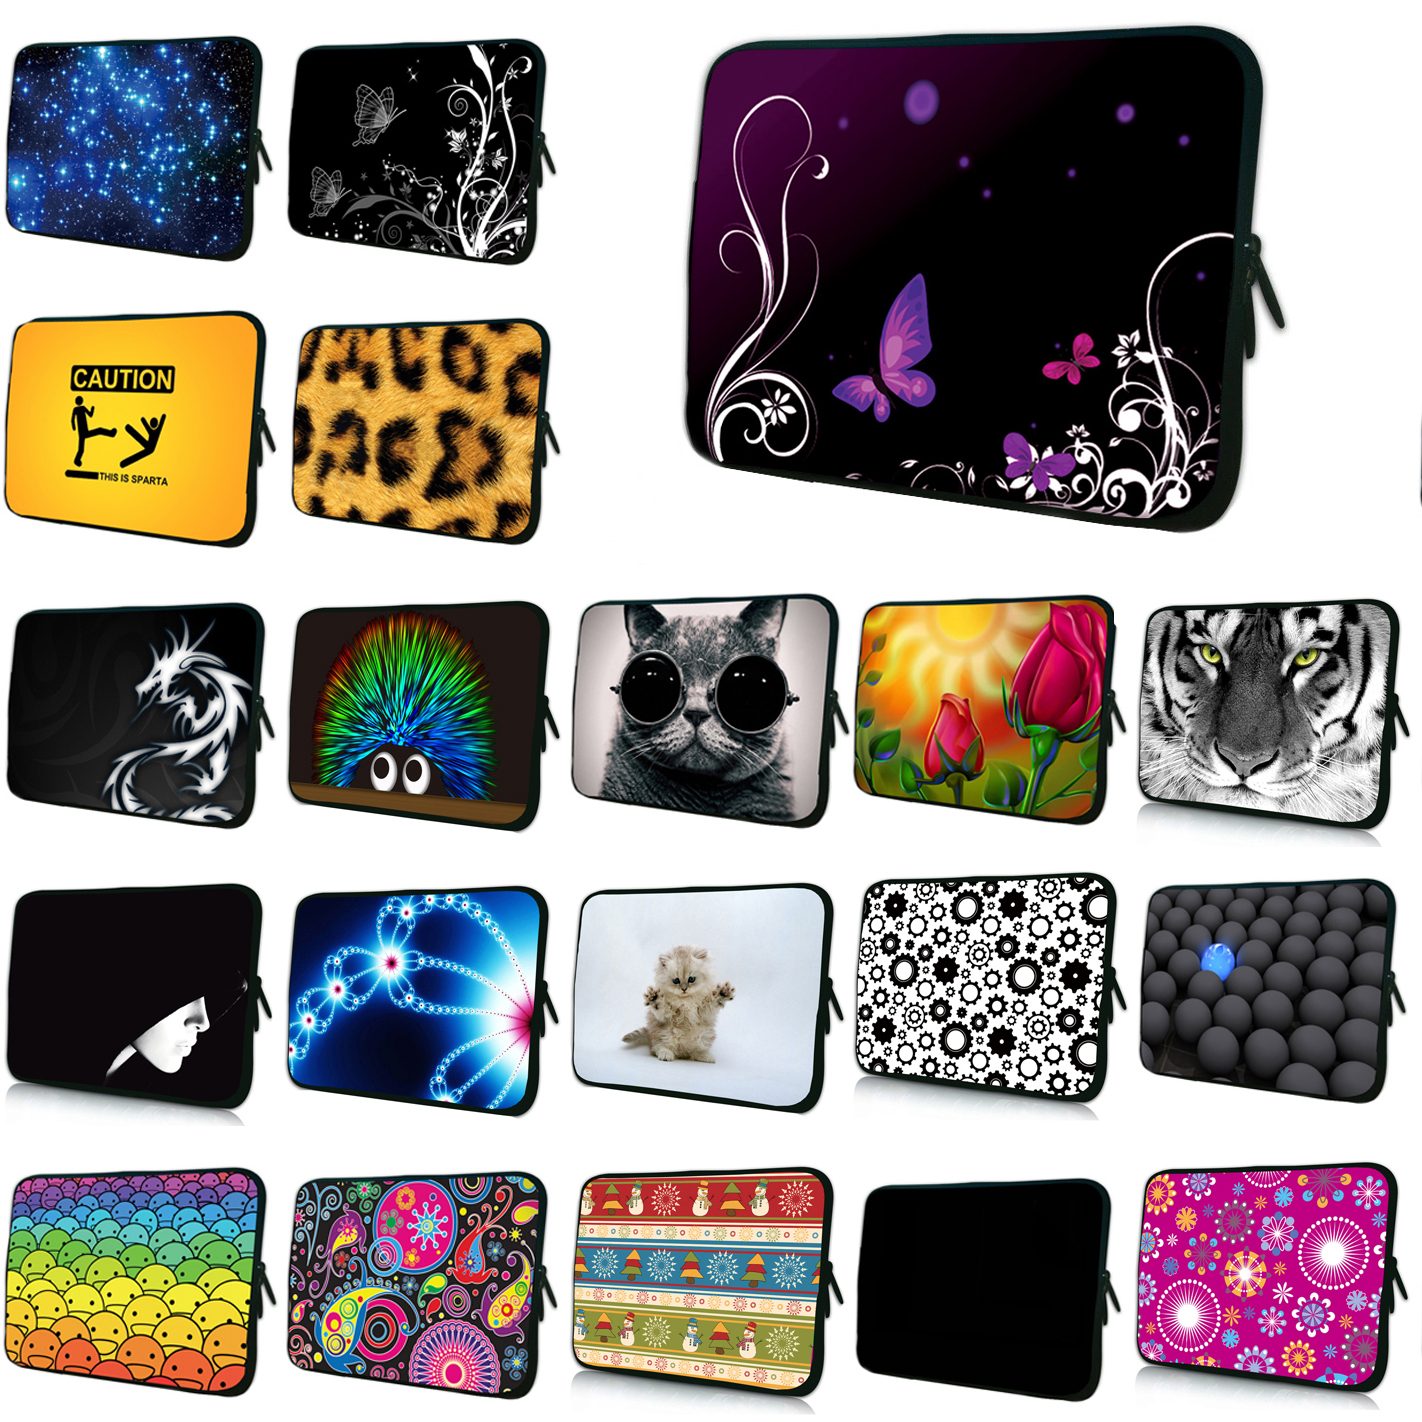 Laptop Bag 15.6 15.4 14 13.3 12.9 12.1 11.6 12 9.7 10 7 8 Tablet 10.1 inch Mini PC Netbook Shell Case Bags For Xiaomi Chuwi HP